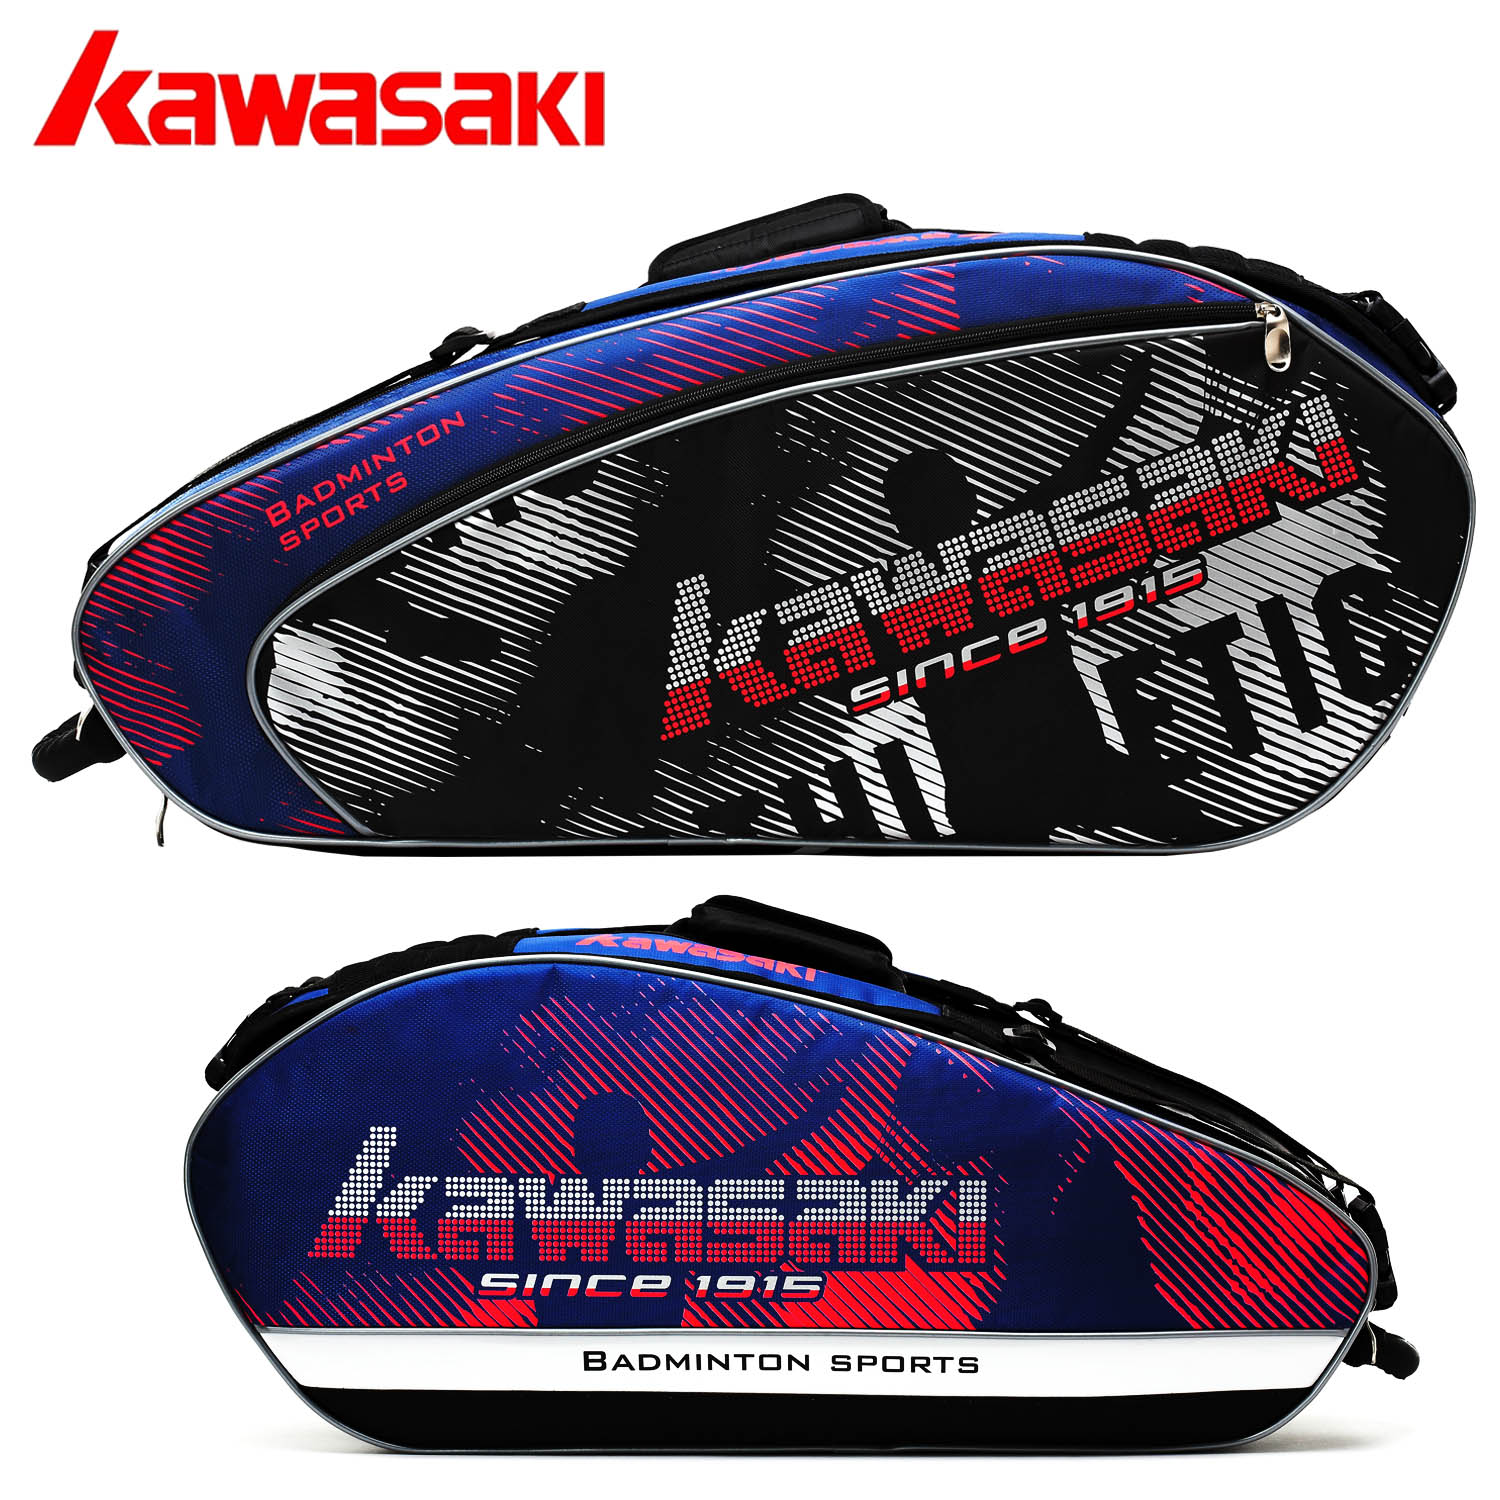 Kawasaki badminton bag 6 sticks 3 sticks tennis racket bag badminton racket bag backpack bag men and women